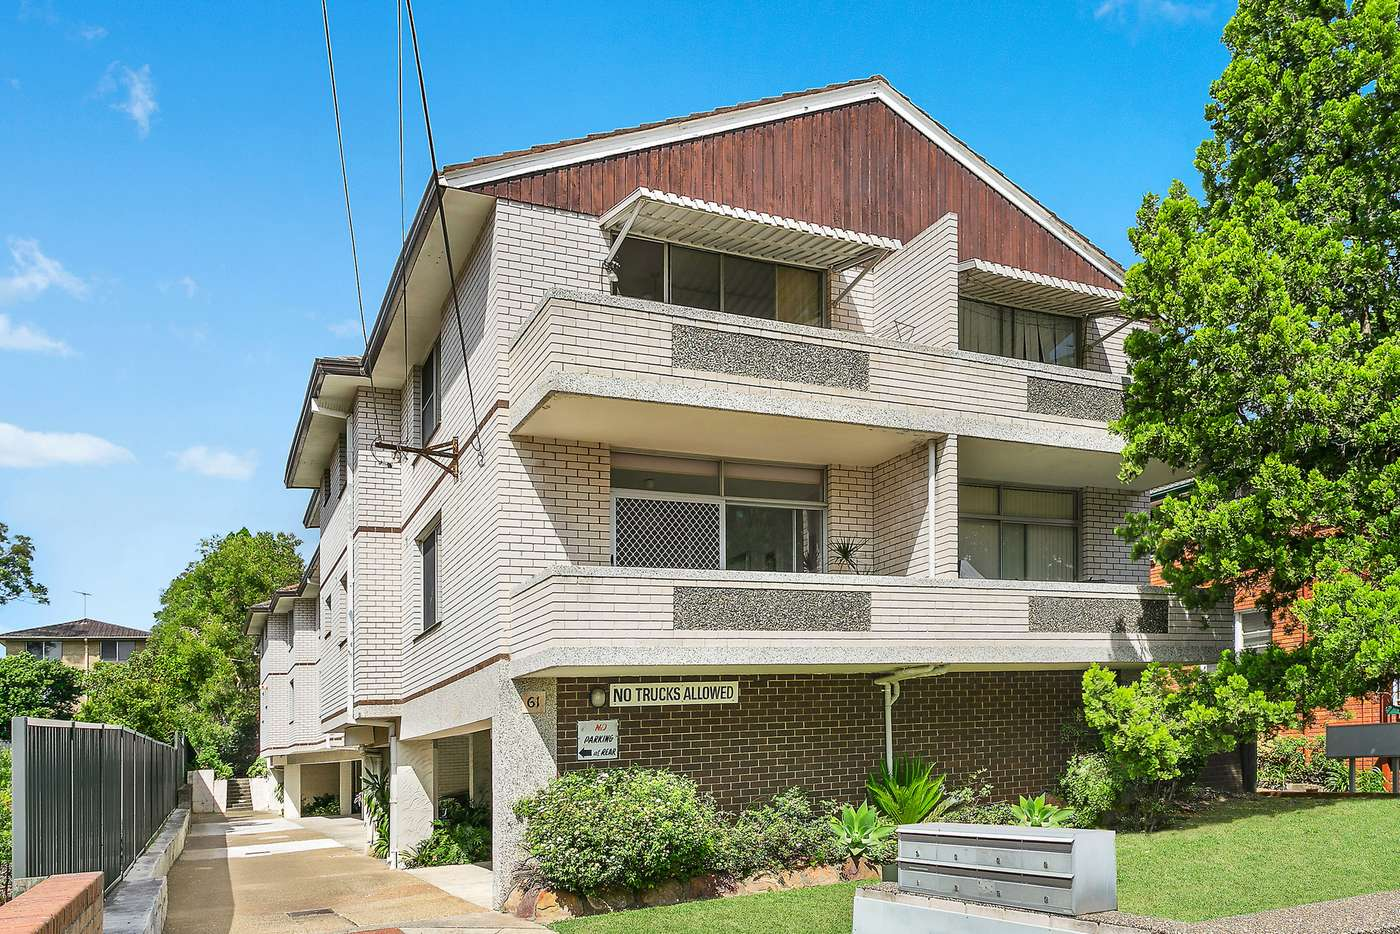 Main view of Homely apartment listing, 8/61 Garfield Street, Five Dock NSW 2046